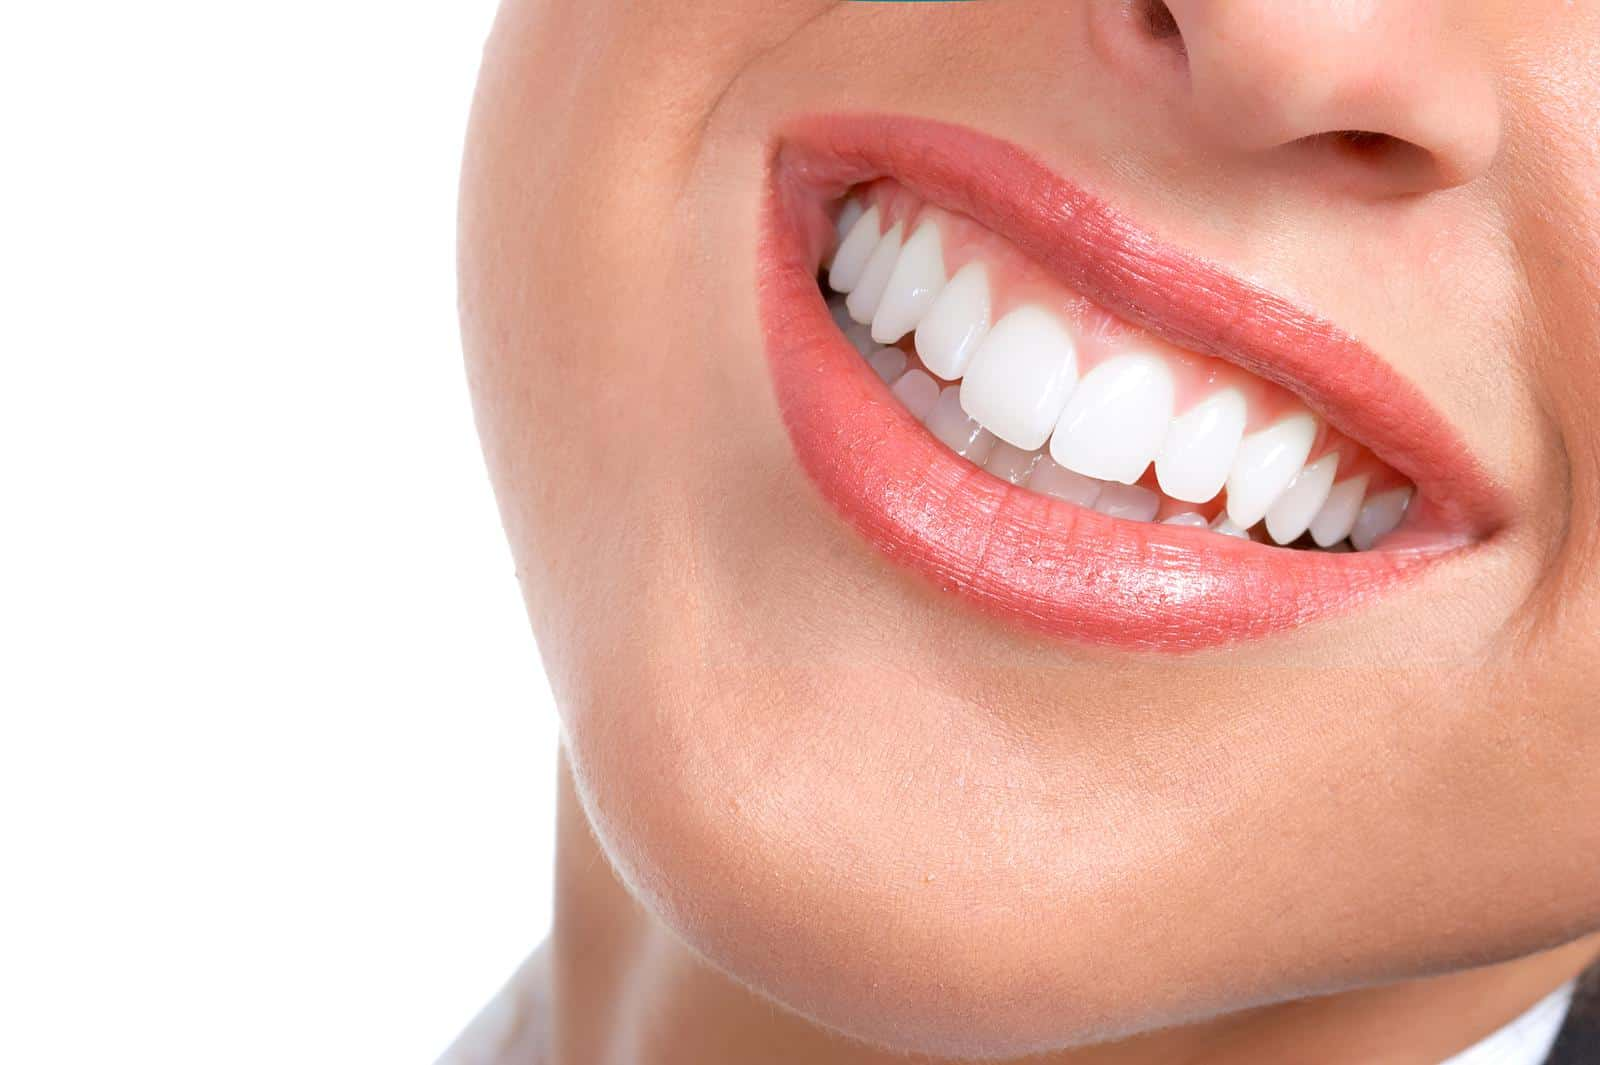 How To Get White Teeth Without the Costly Treatments